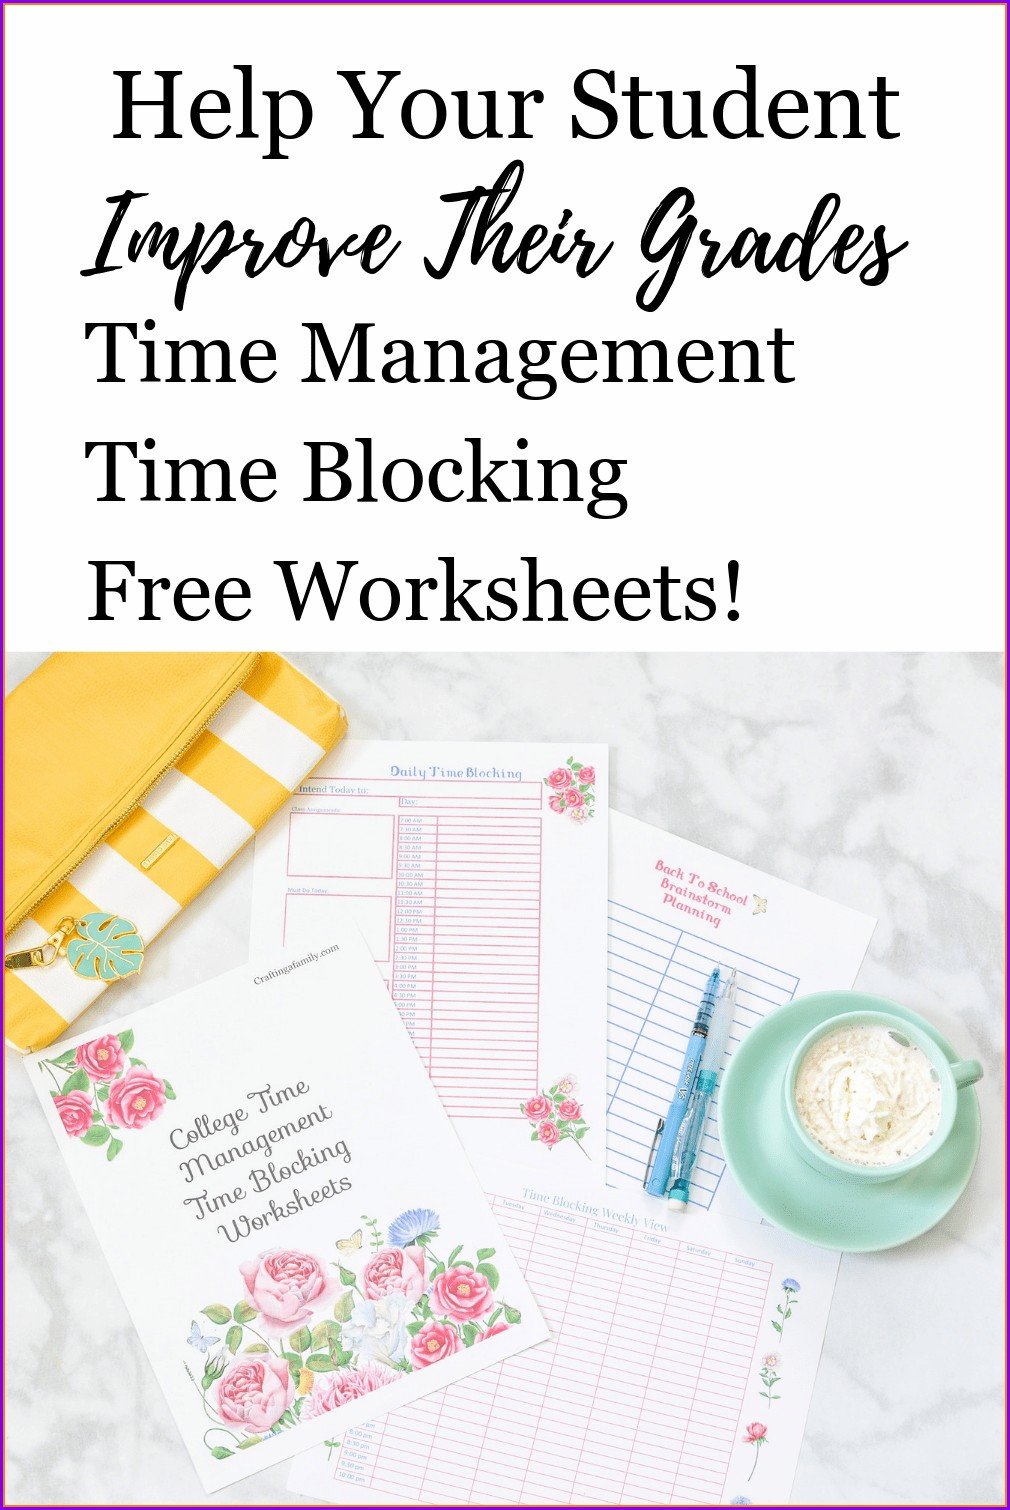 Free Printable Time Management Worksheets